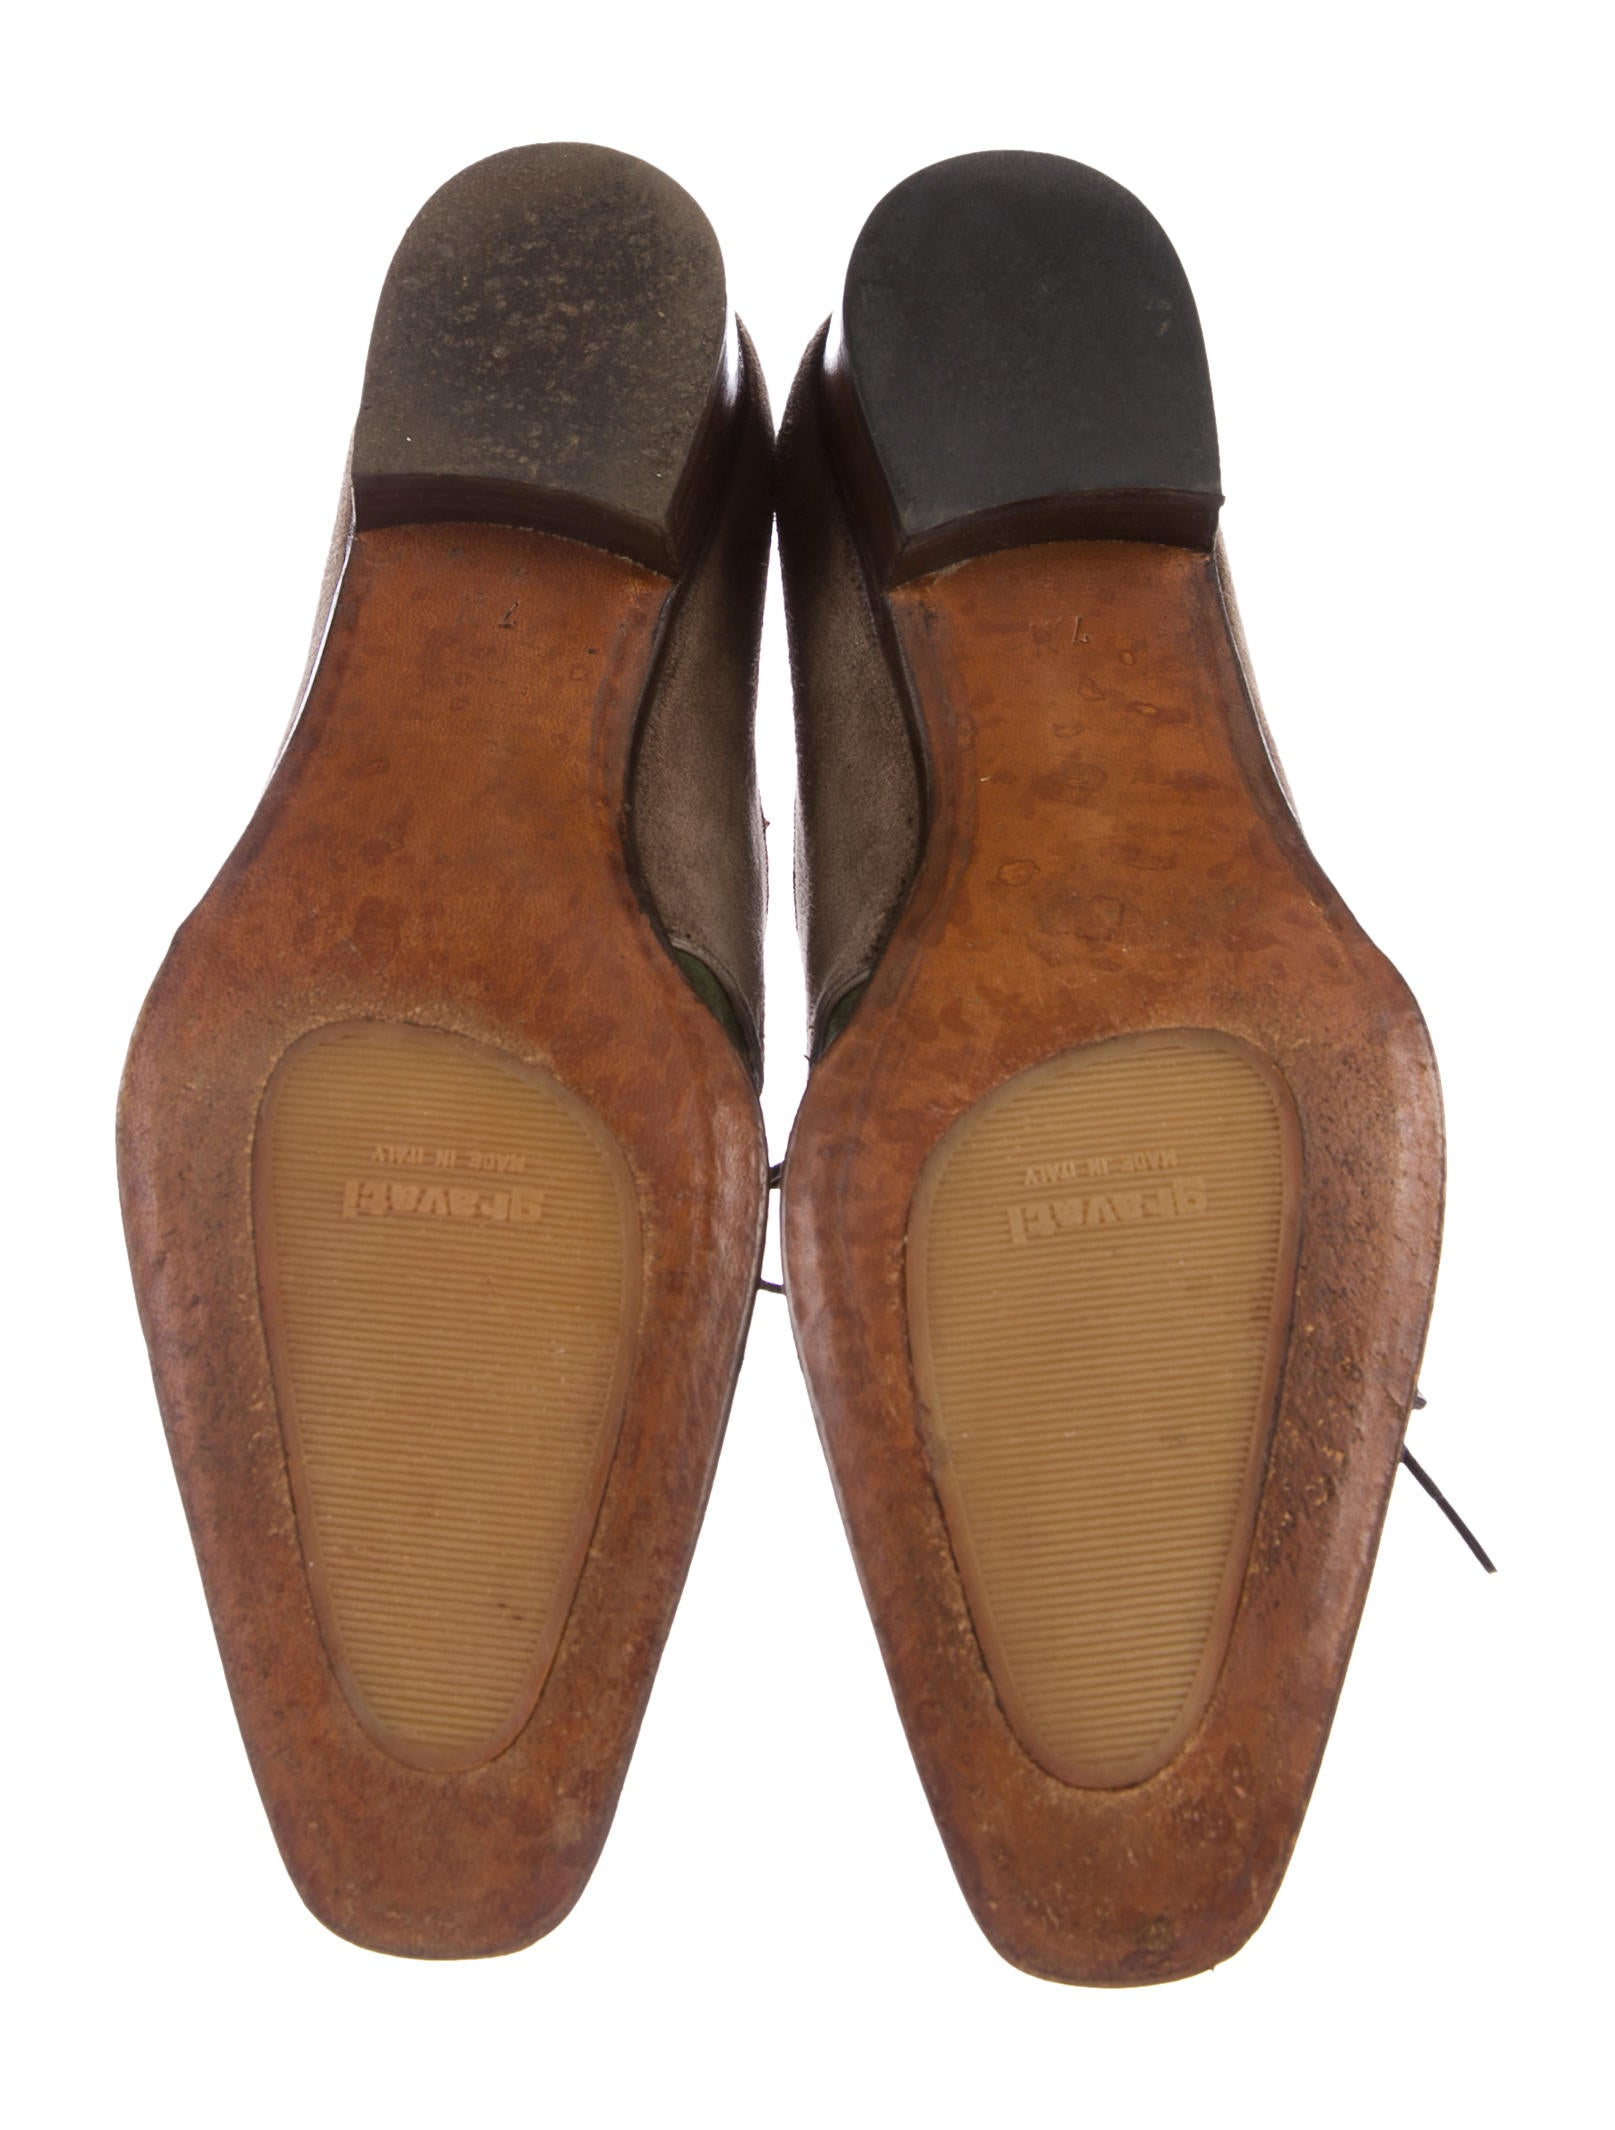 cremona women Deals online salvatore ferragamo cremona bit loafer (men), shop men's and women's sale clothing and accessories from top brands at great sale prices at pacsun.